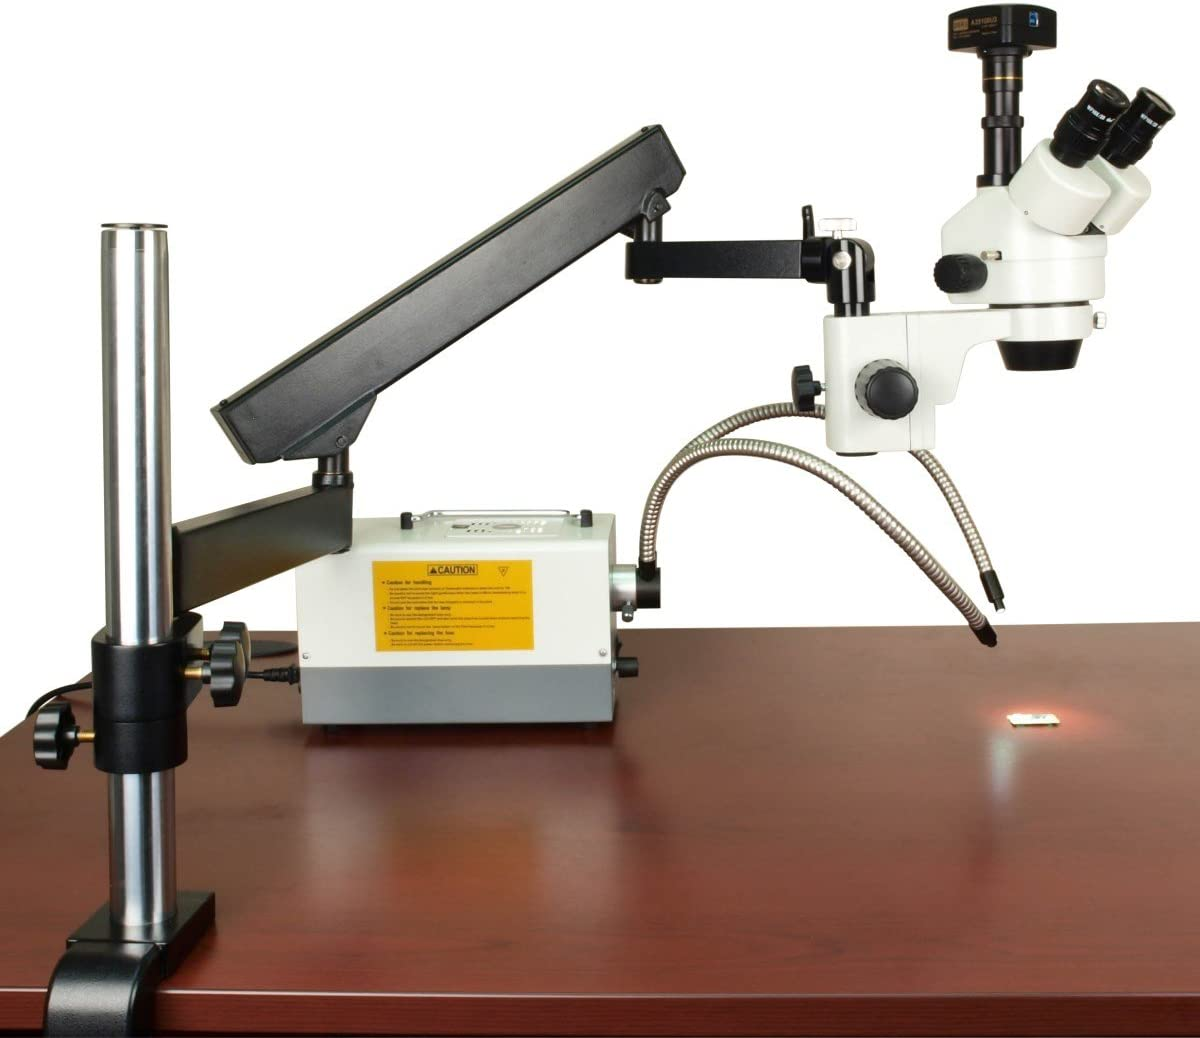 OMAX 2.1X-270X USB3 10MP Trinocular Zoom Stereo Microscope on Articulating Arm with 150W Dual Fiber Light